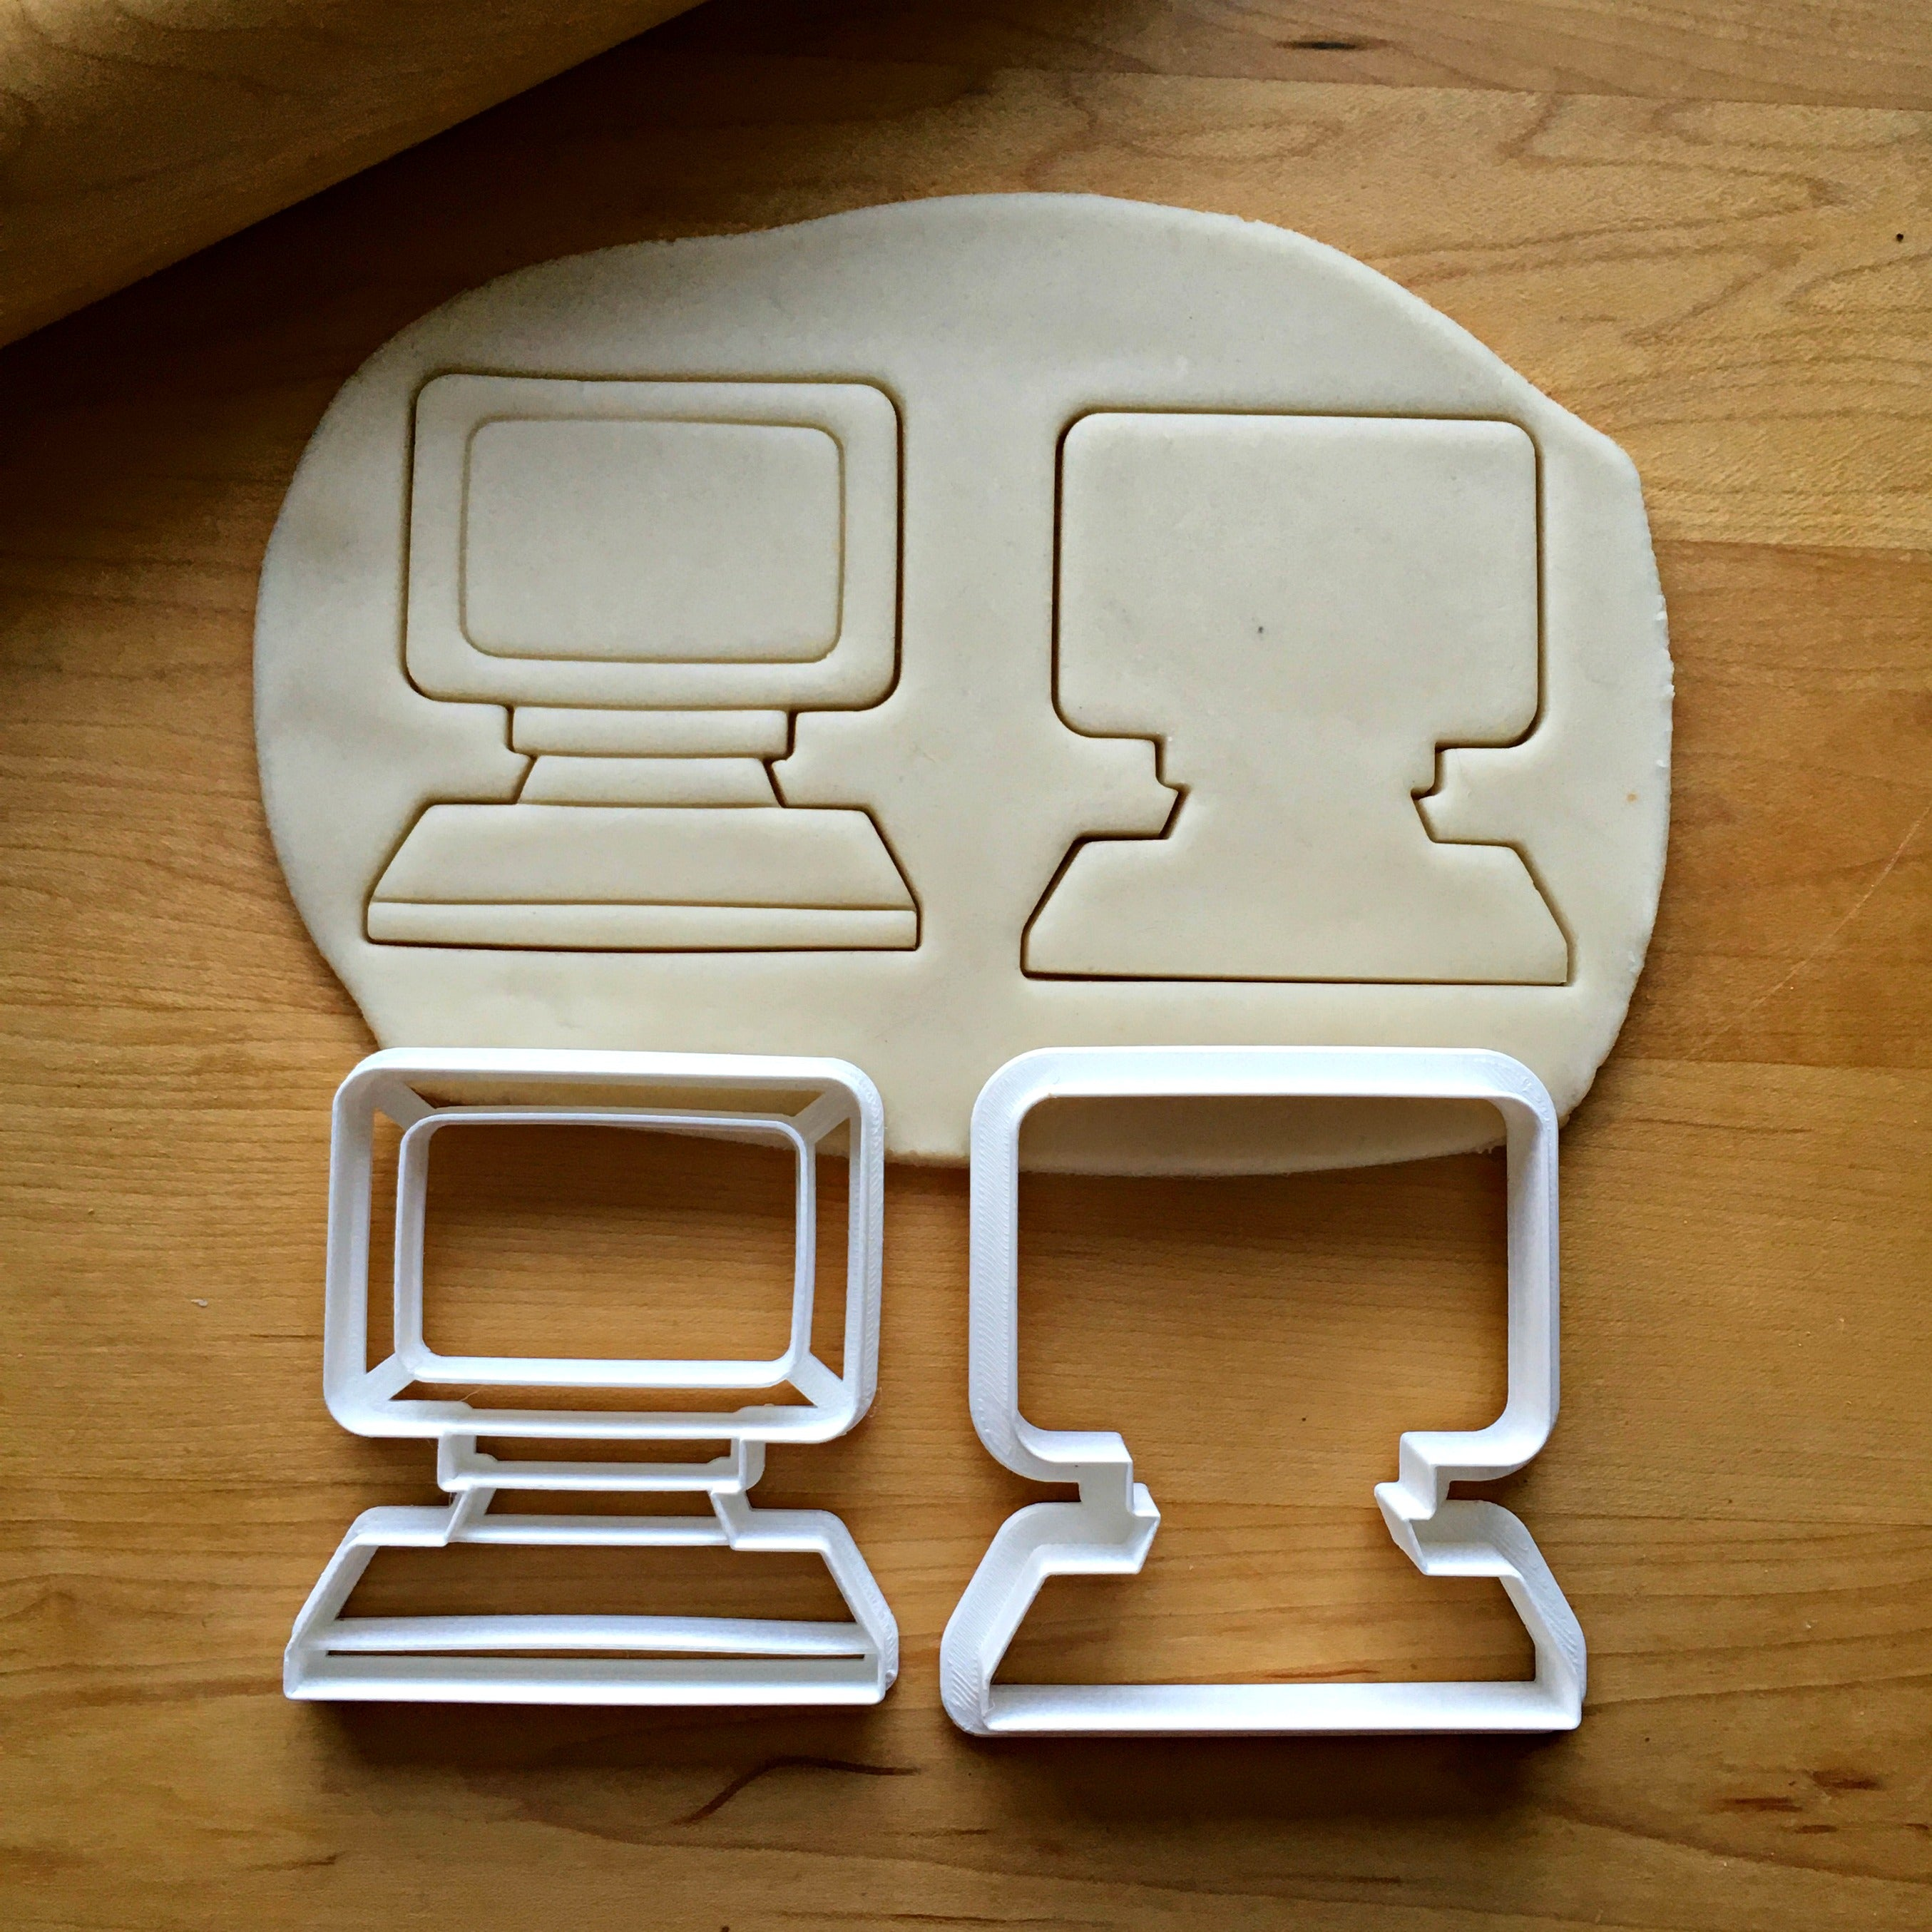 Set of 2 Computer Cookie Cutters/Dishwasher Safe